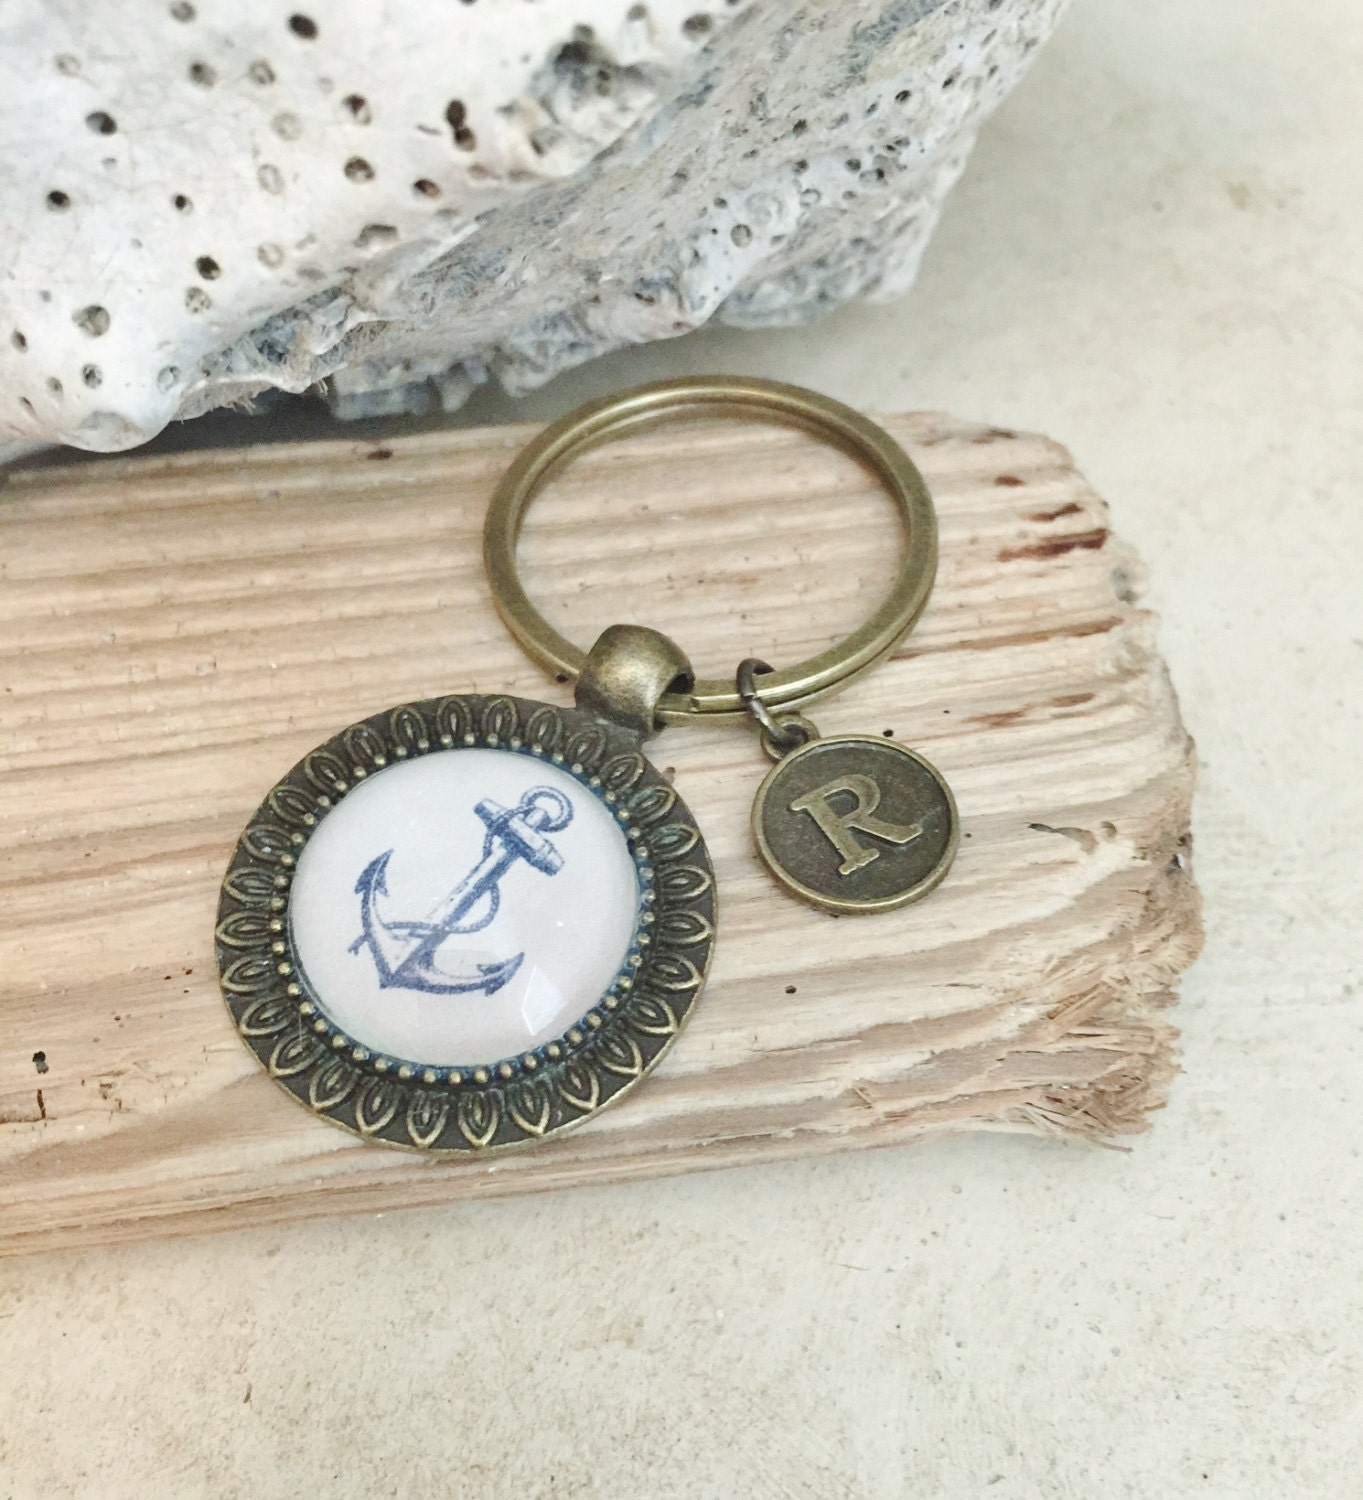 Gifts for her personalized keychain beach wedding favors for Engravable gifts for her